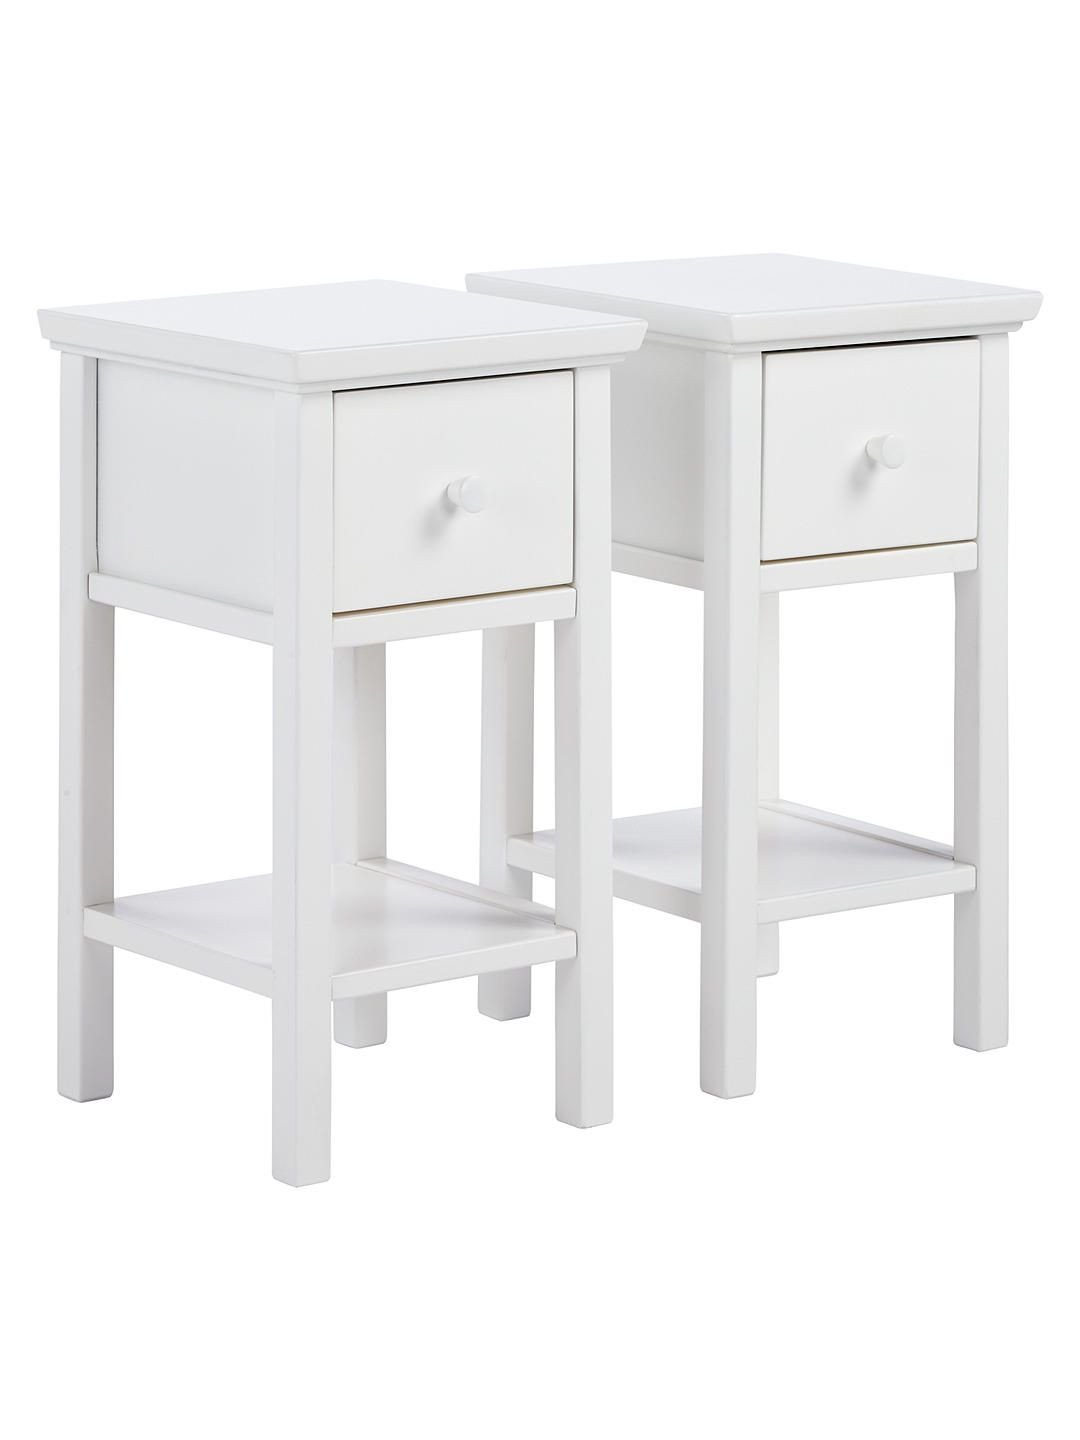 Small Bedroom End Tables Lovely John Lewis & Partners Wilton Set Of 2 Bedside Tables Grey